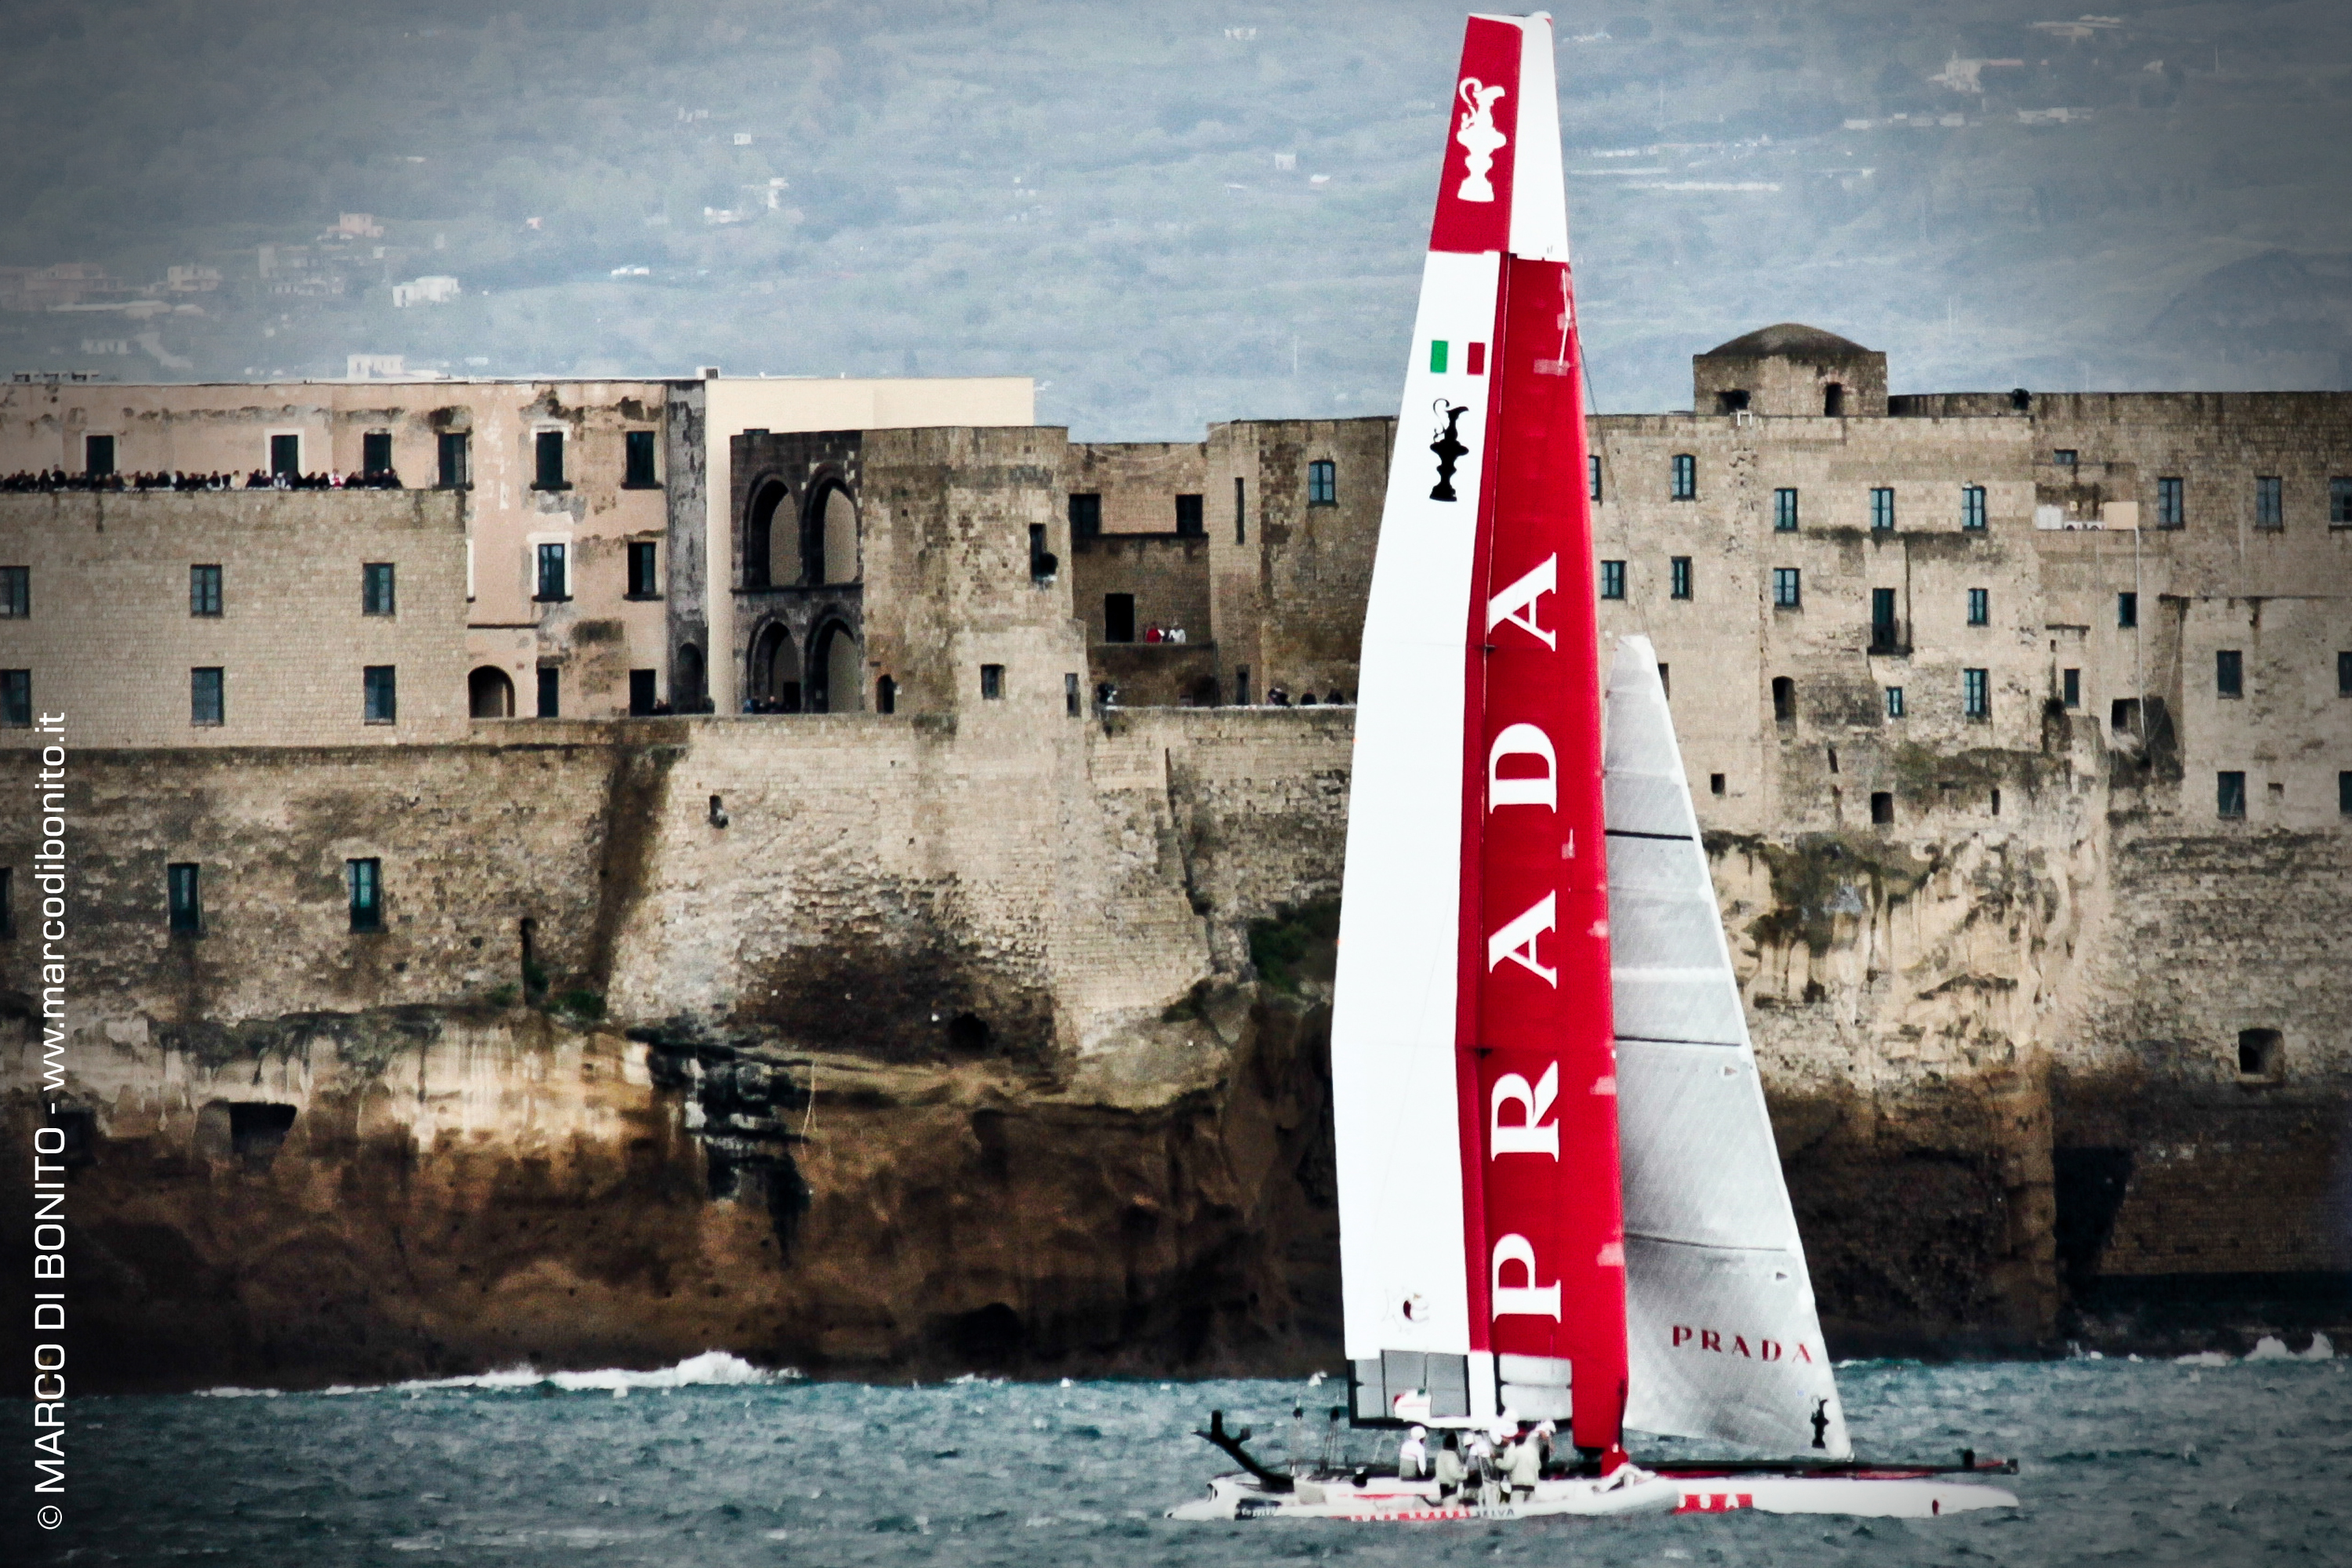 America's Cup 04